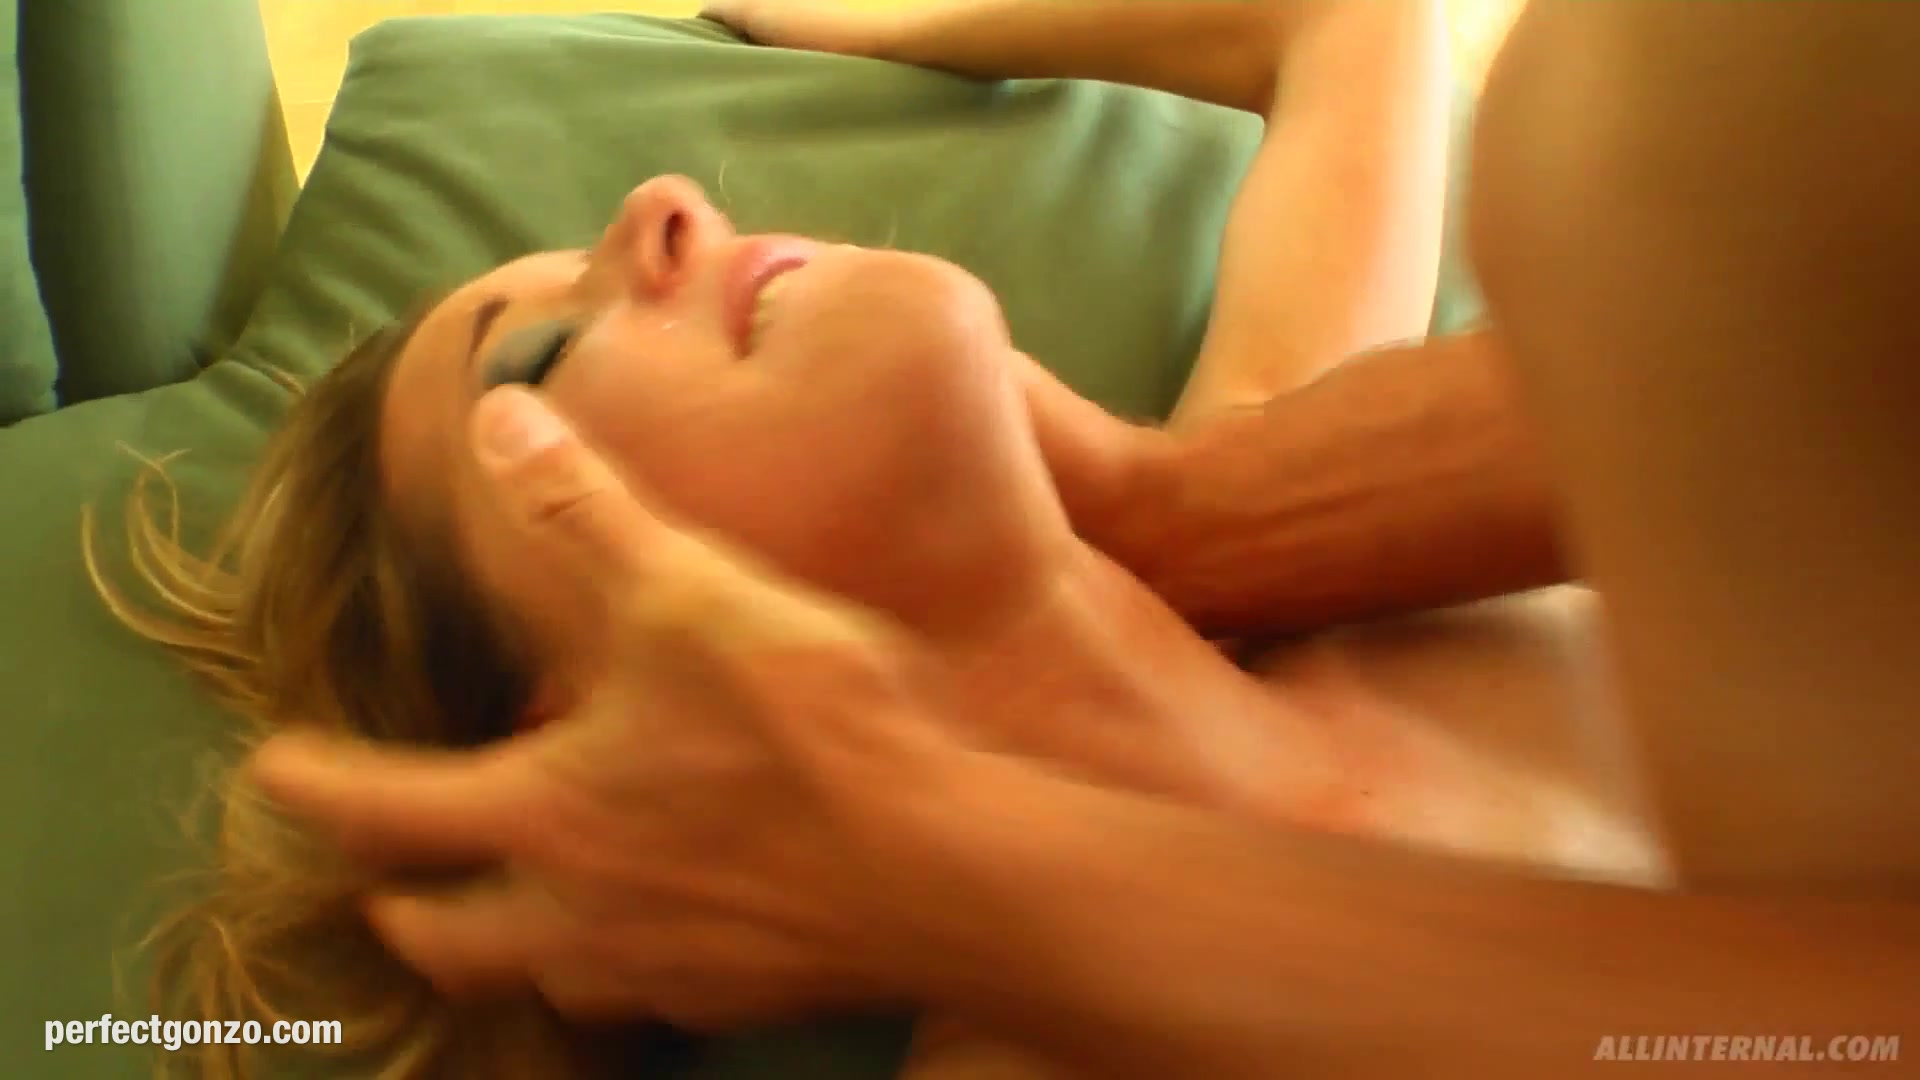 Erotic sex for women Sexy xxx video